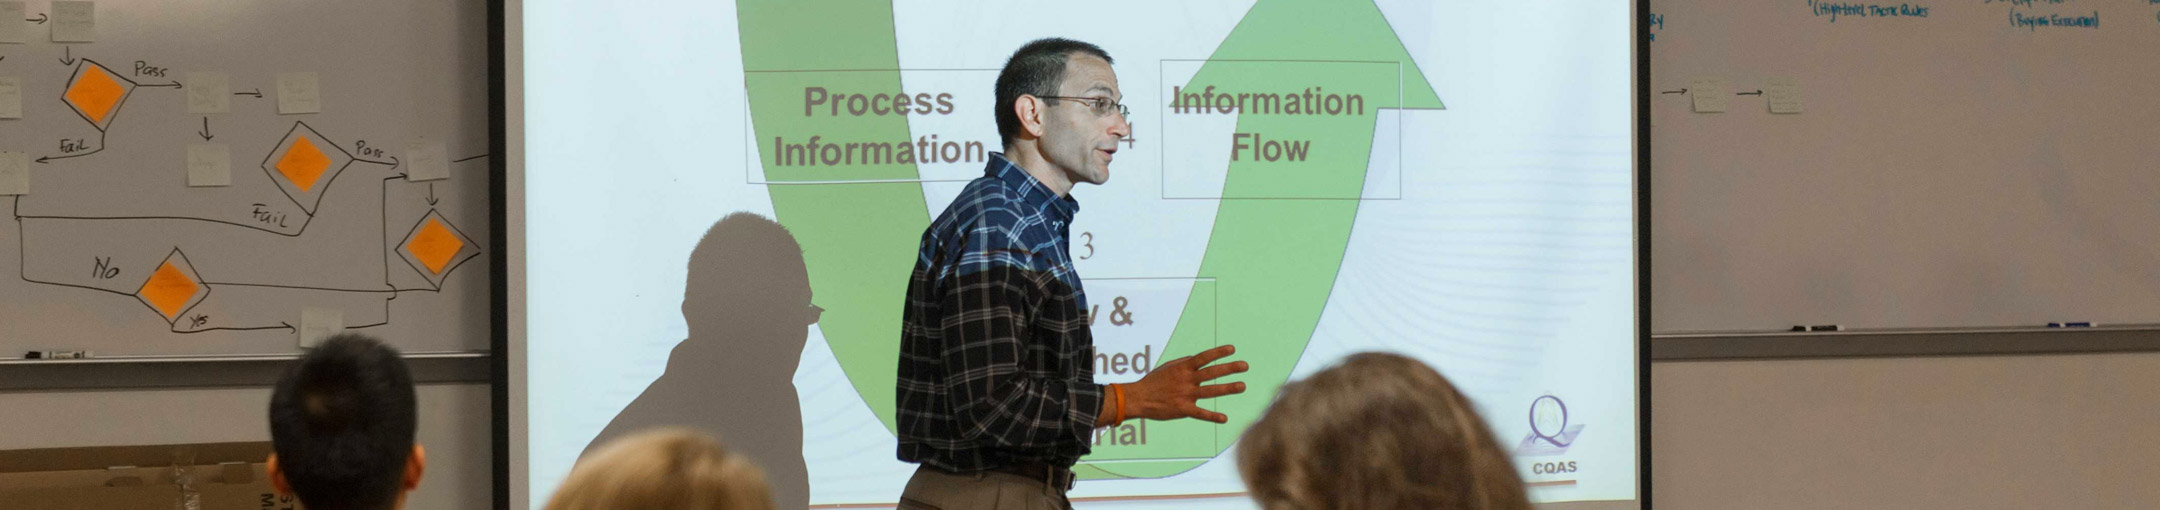 A professor walking in front of projection screen with the text Process Information and Information Flow visible. The backs of student heads are in the foreground.